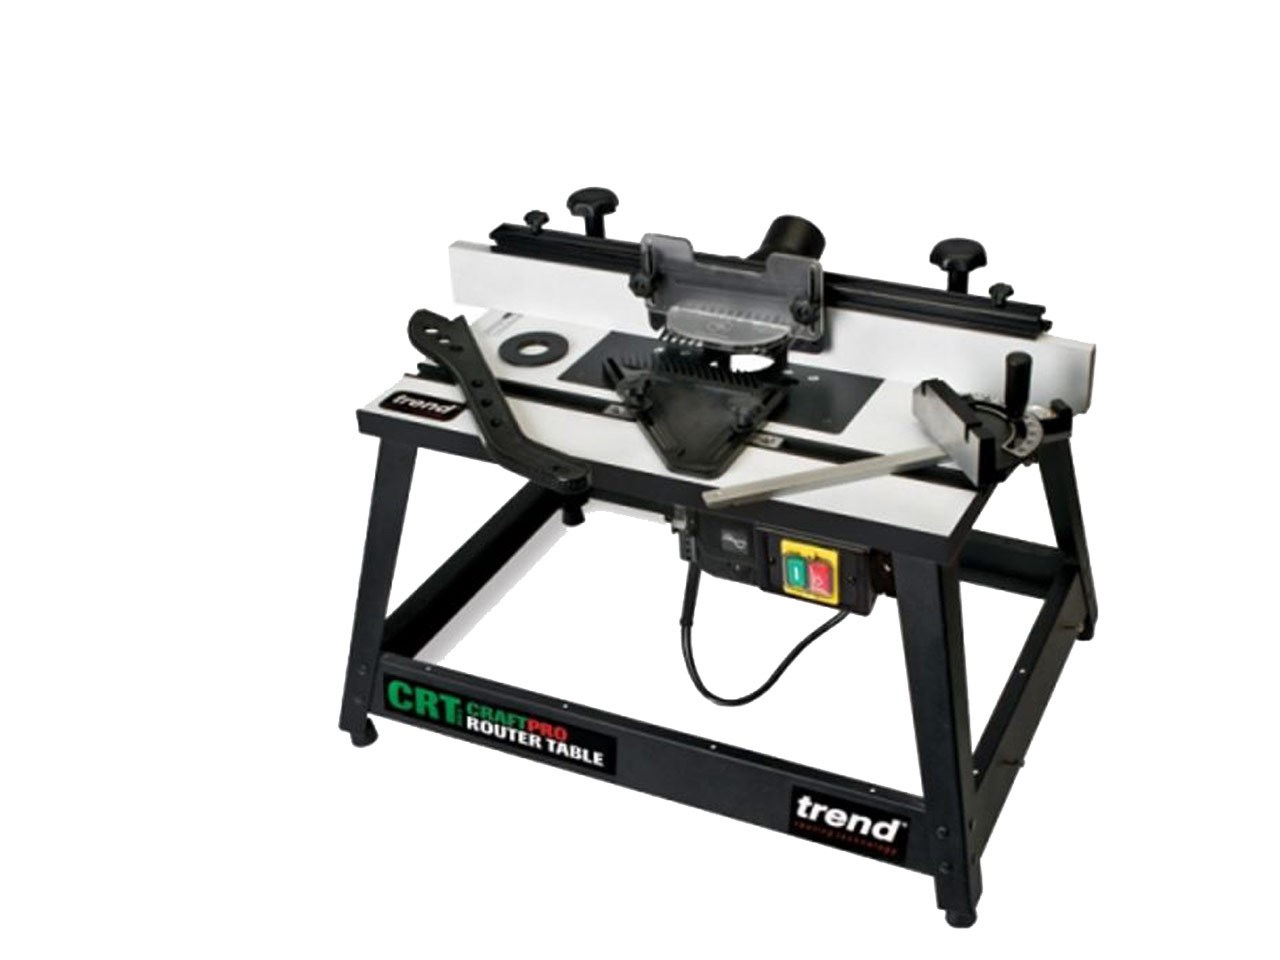 Trend crtmk3 craftpro router table mk3 240v greentooth Choice Image